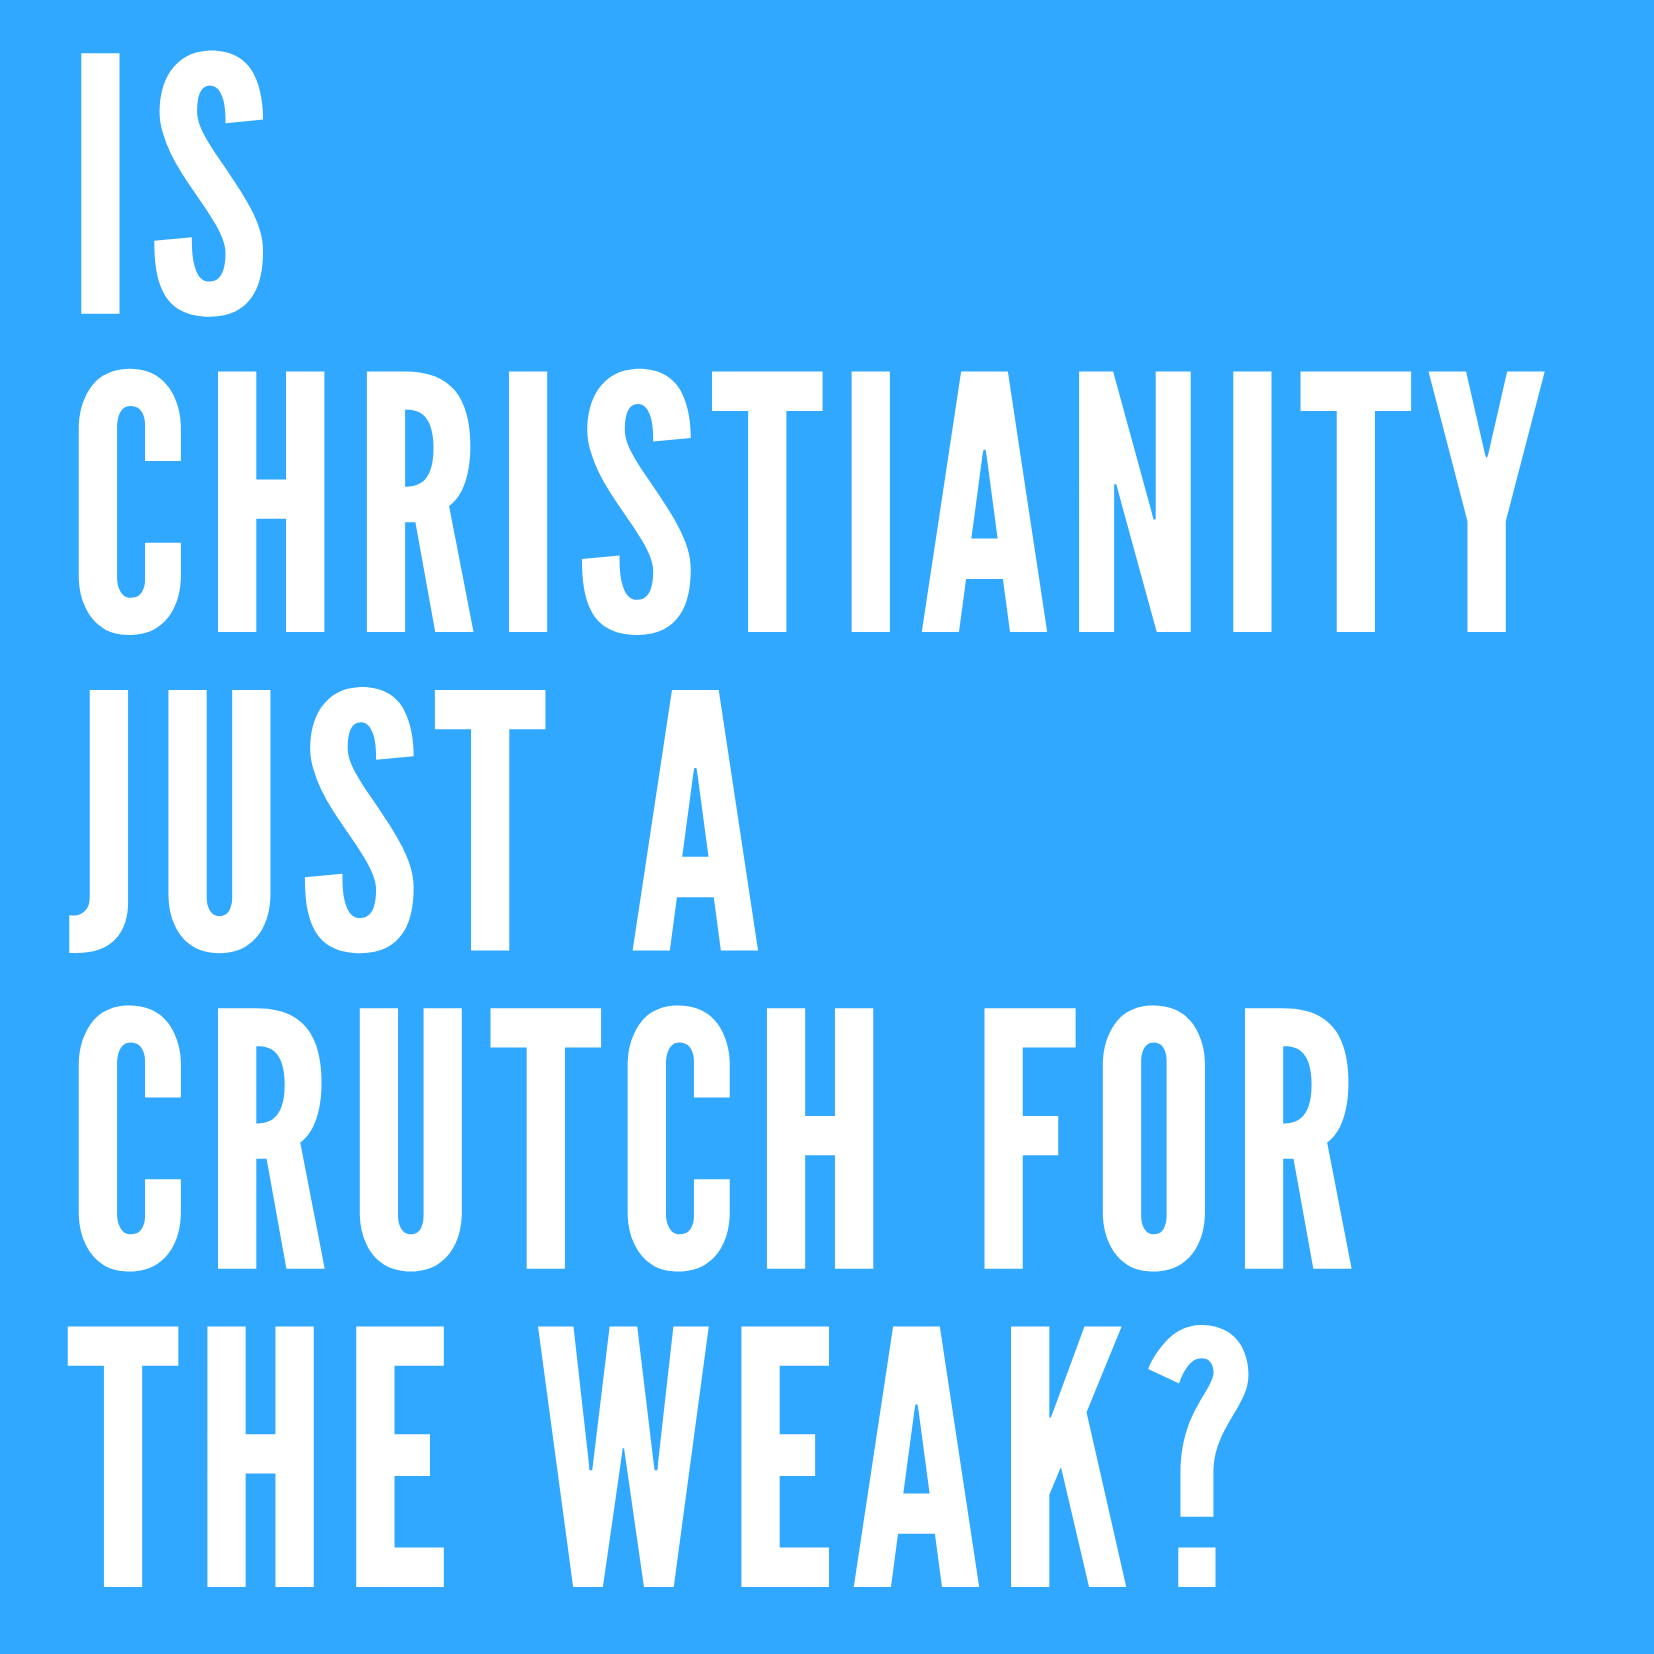 Is Christianity just a crutch for the weak?